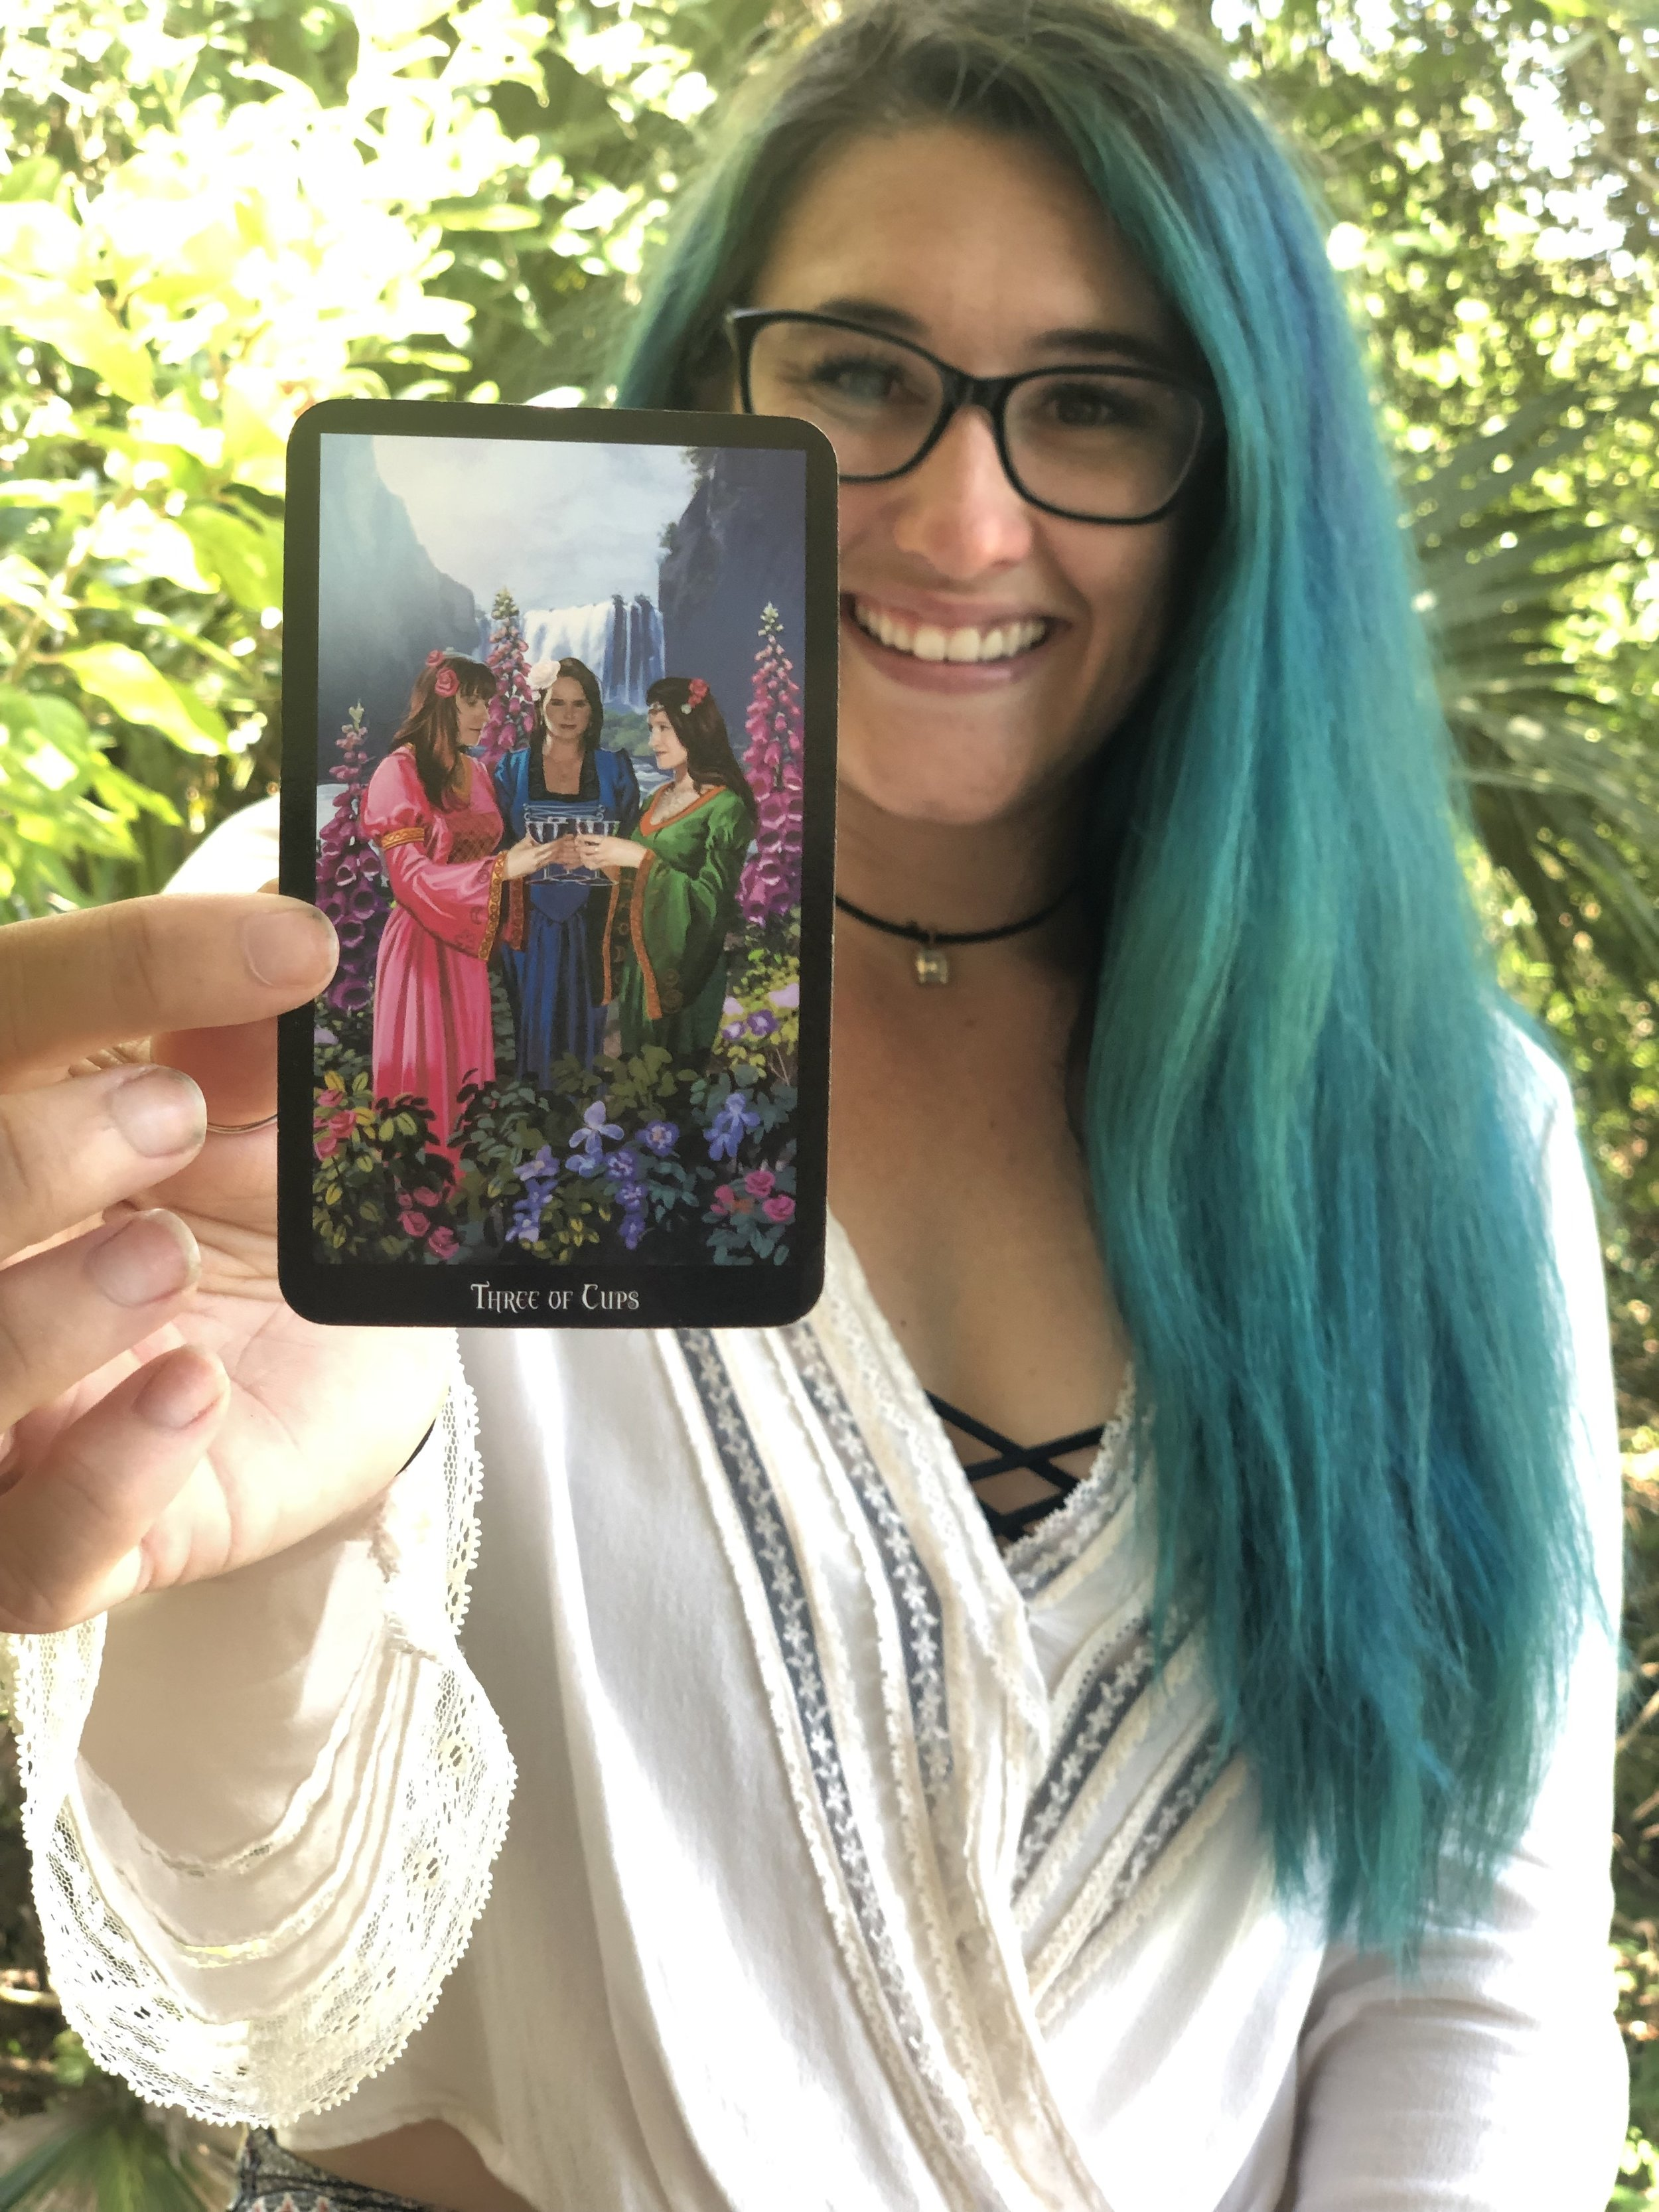 Learn To Read Tarot Intuitively - This program is designed to create clarity around how you read tarot intuitively and will give you the confidence to begin reading for others within four weeks.I will show you how to tap into your own spiritual language, and how to connect with your cards in real life from your soul, without memorizing or looking up card meanings.Each week you will receive pre-made content via video or written posts, in accordance with your unique learning style. You'll also have weekly coaching calls to integrate all course material, learn, and ask questions!